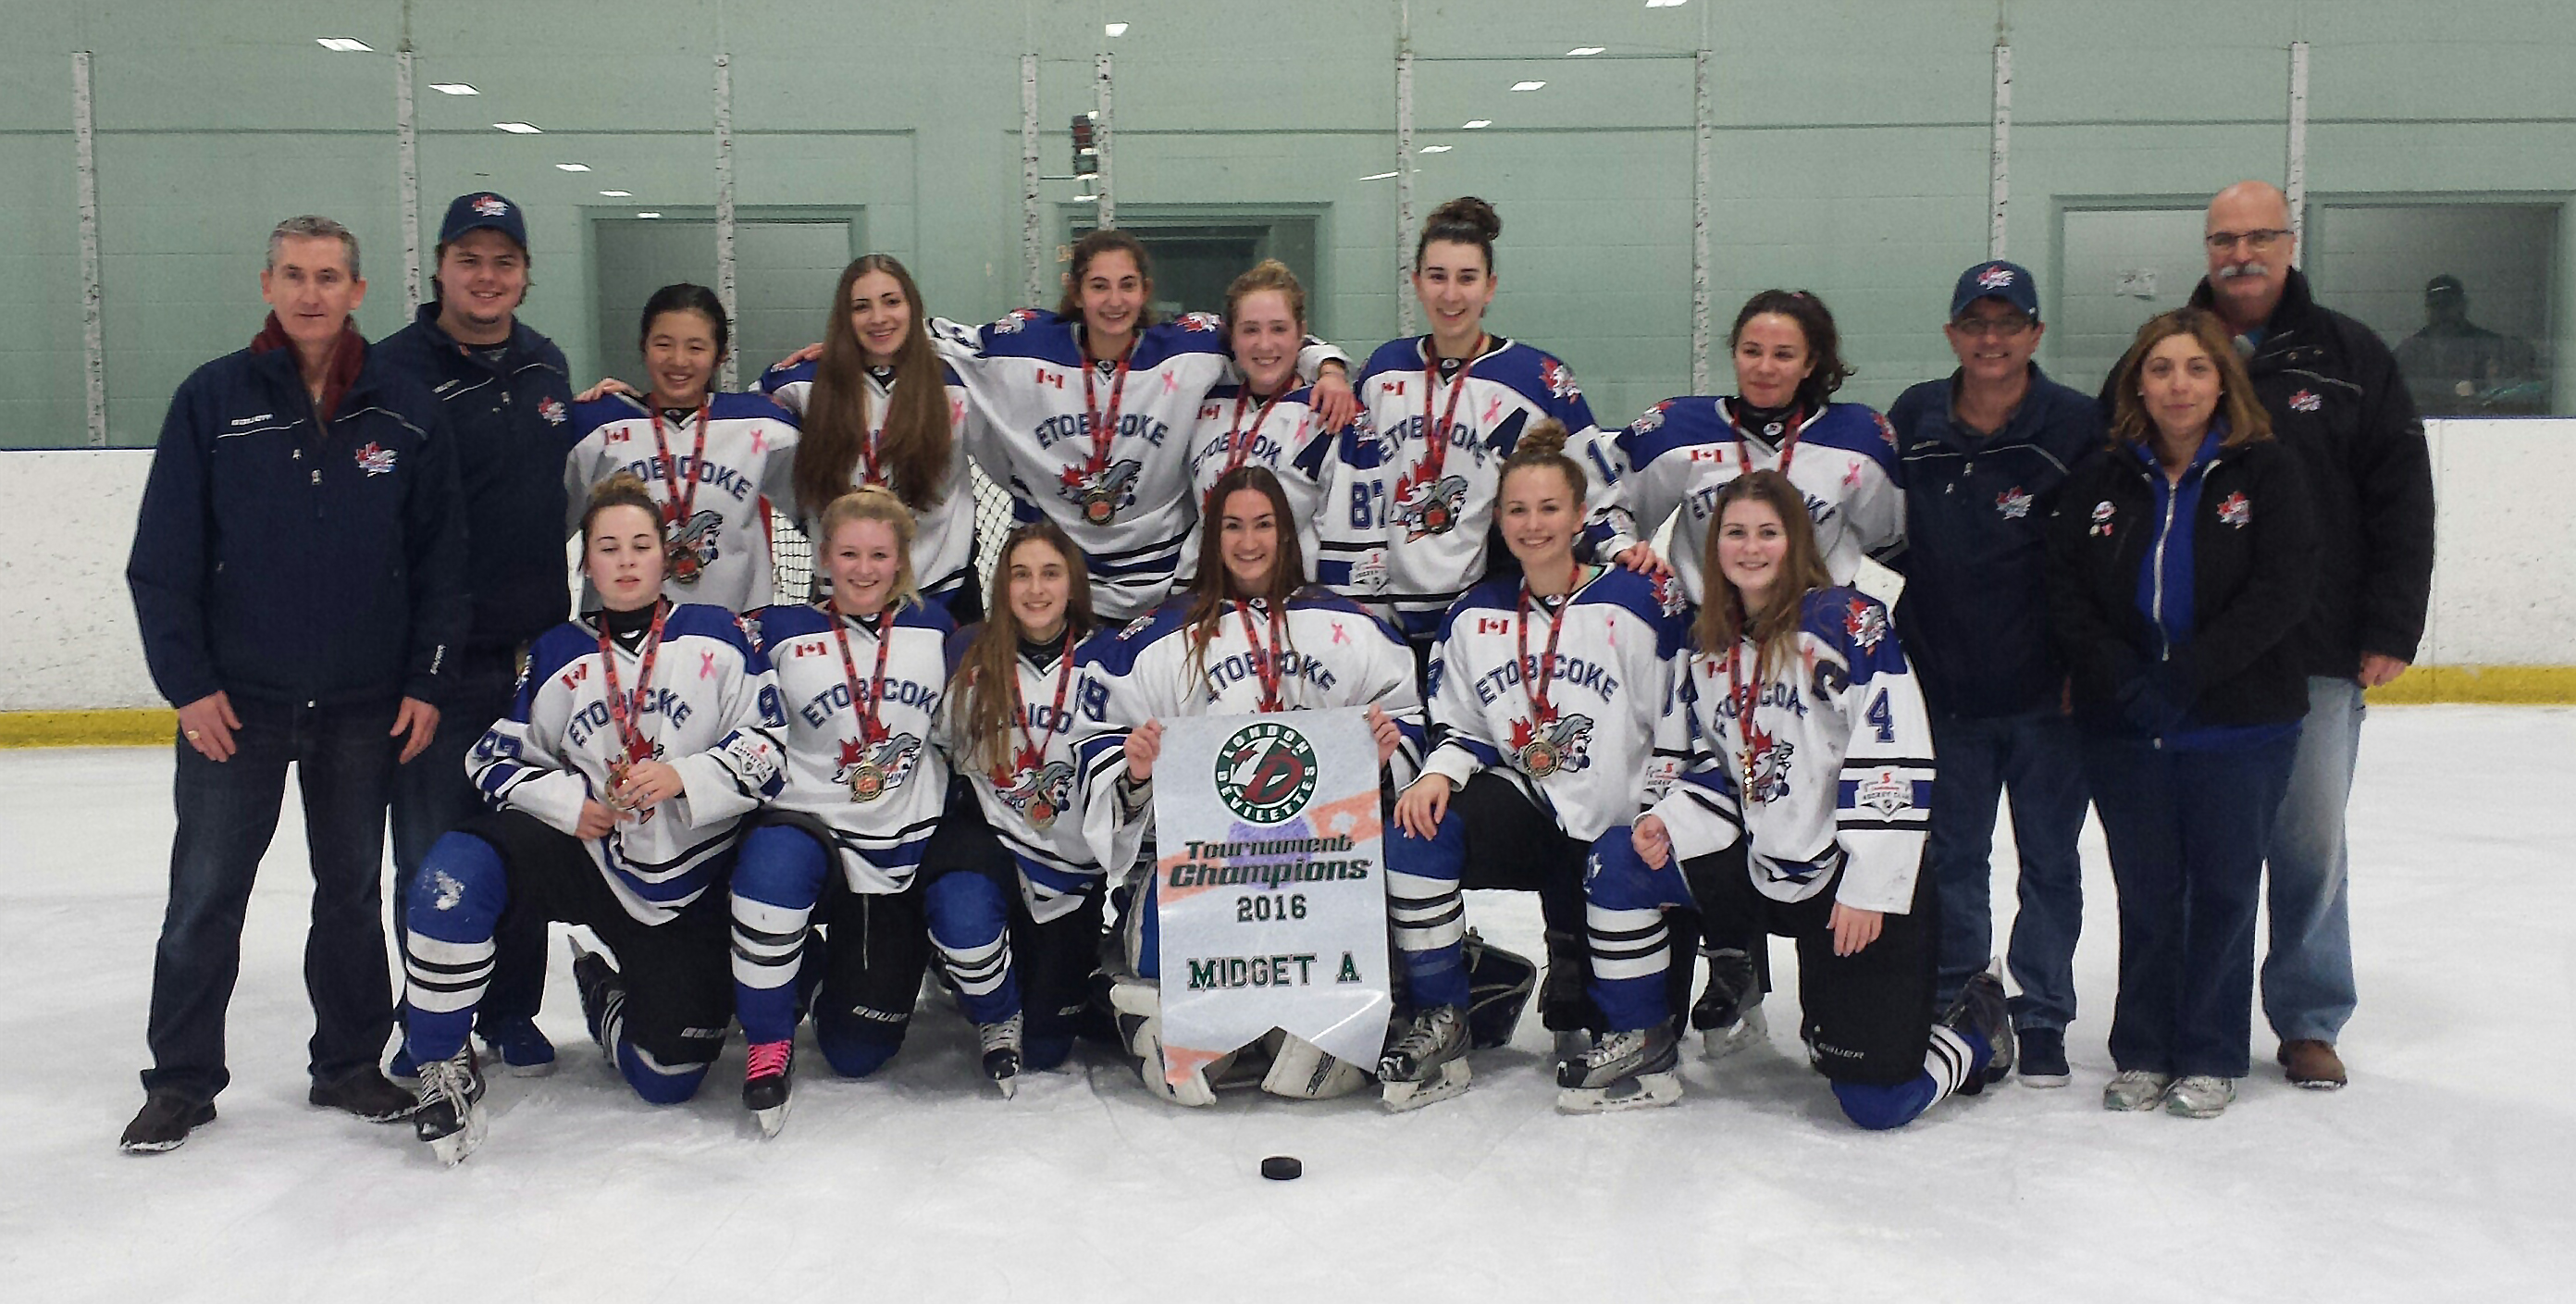 Midget A take GOLD at the London Devilettes tournament!